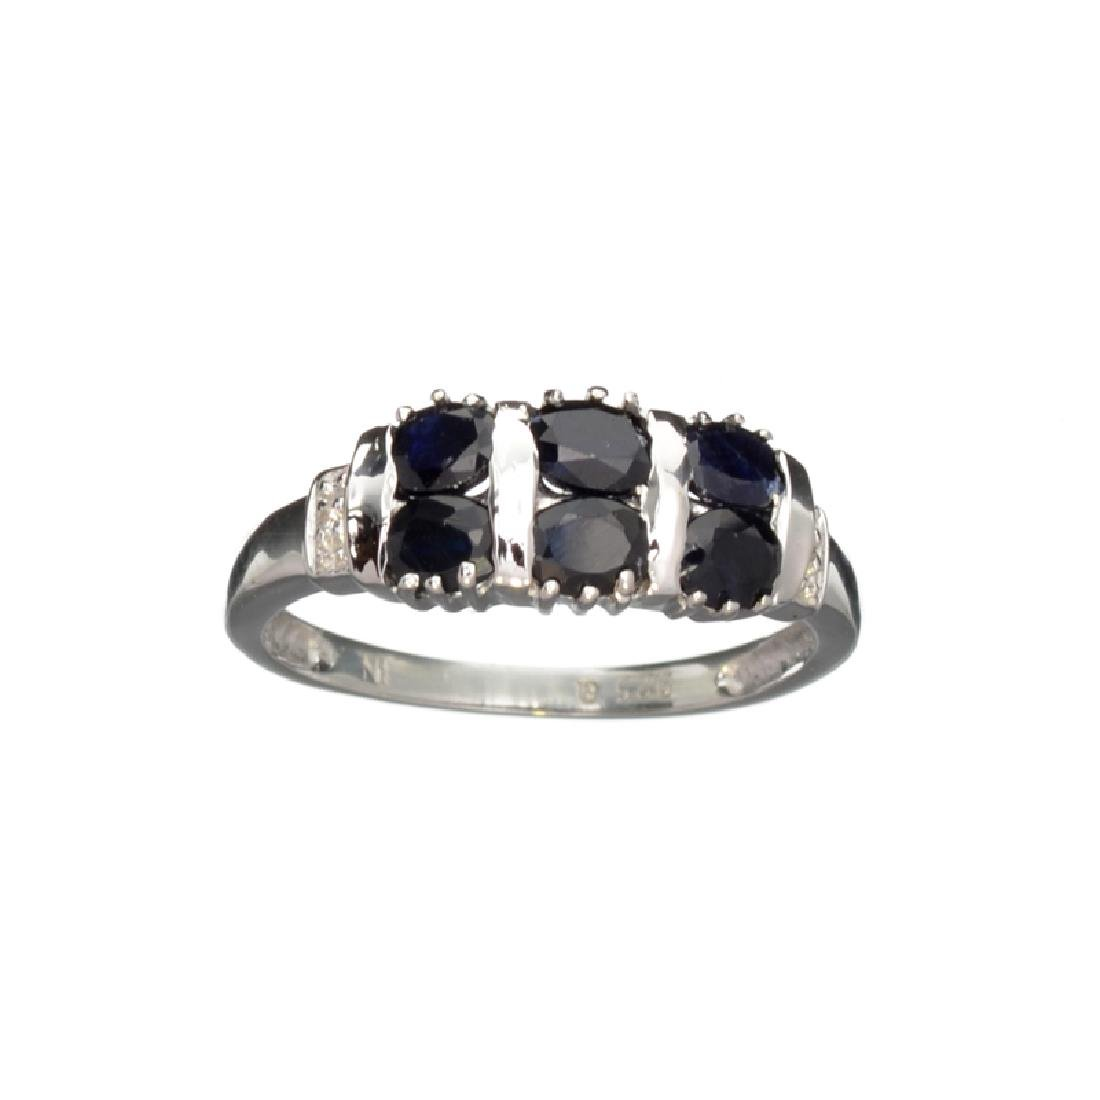 APP: 0.5k Fine Jewelry 1.33CT Round Cut Blue And White